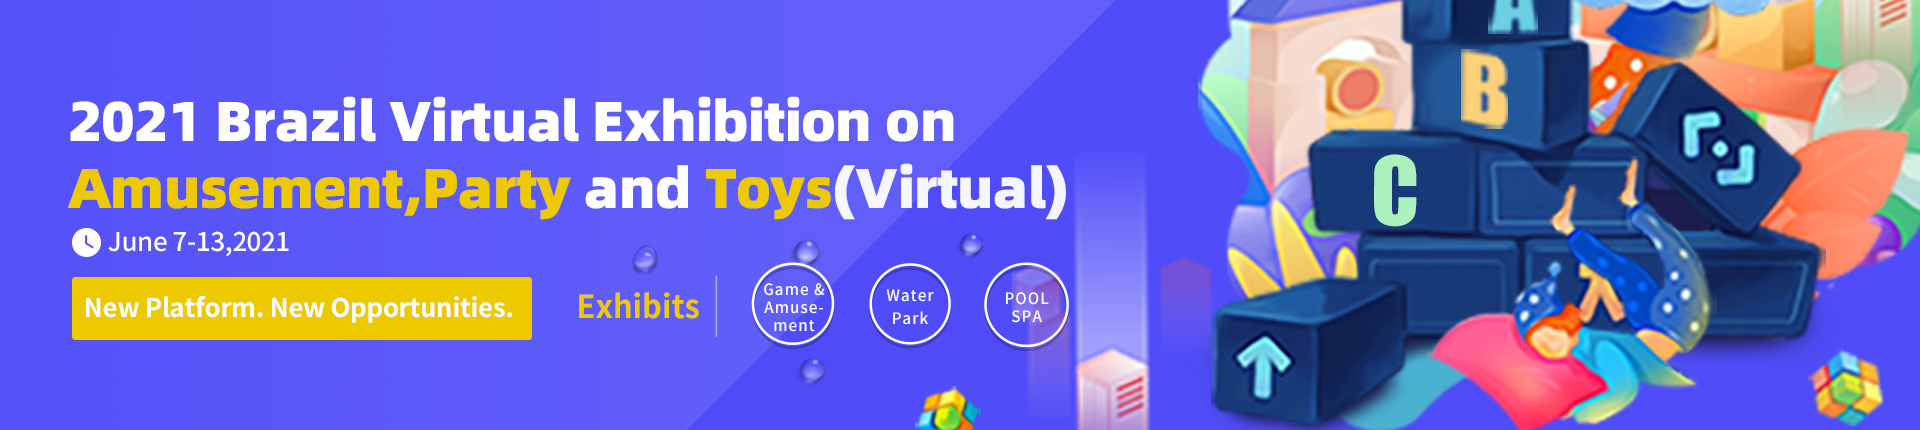 2021 Brazil Virtual Exhibition on Amusement,  Party and Toys